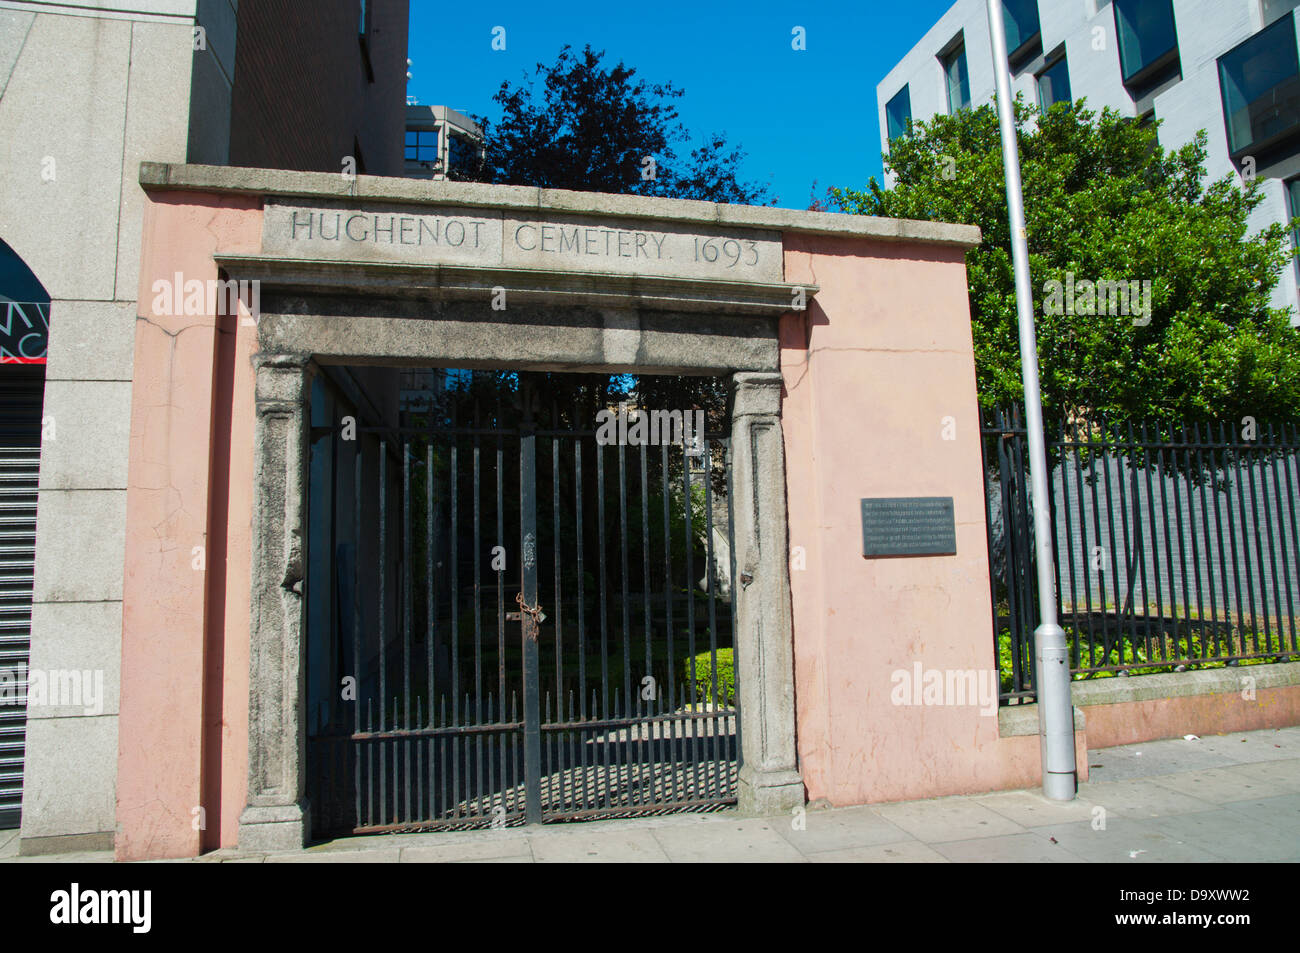 Huguenot cemetery (1693) Merrion Row street central Dublin Ireland Europe - Stock Image